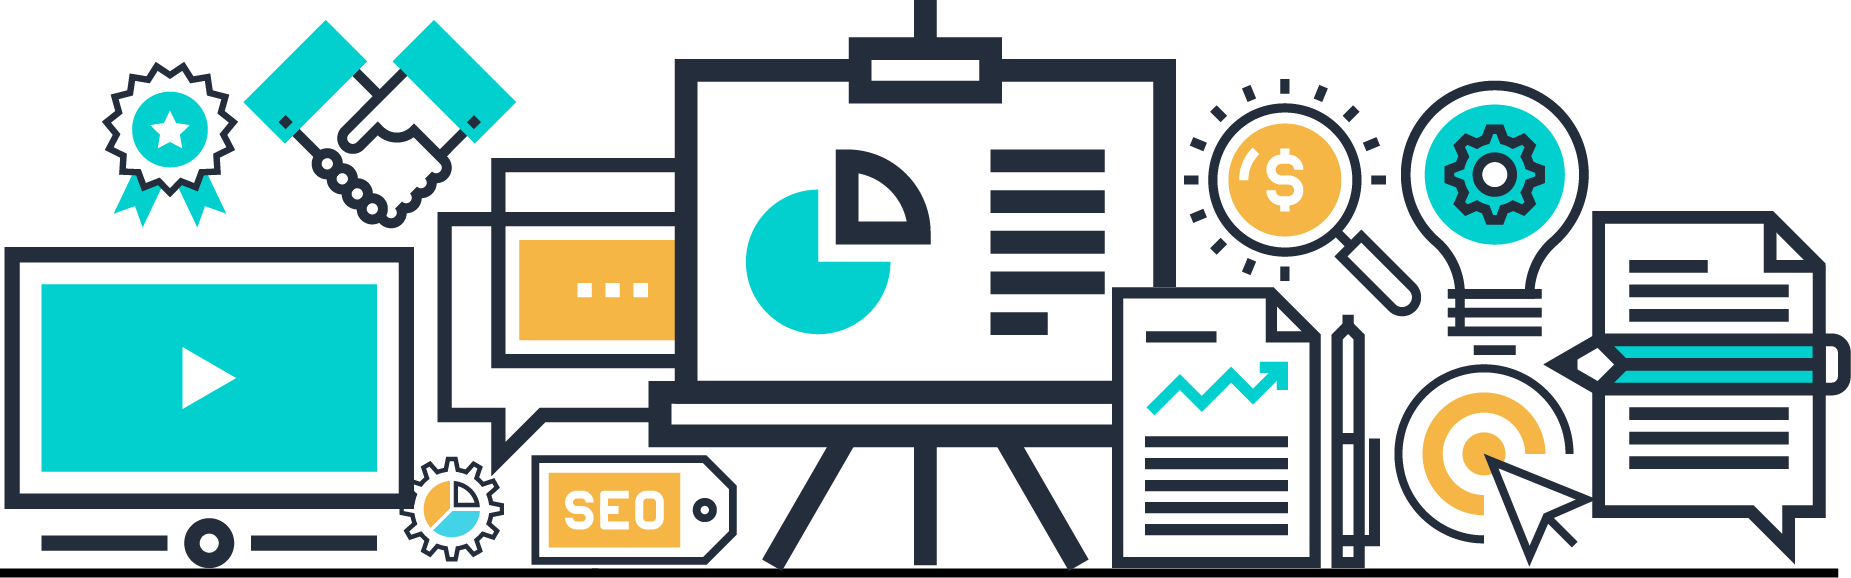 selling and managing SEO projects